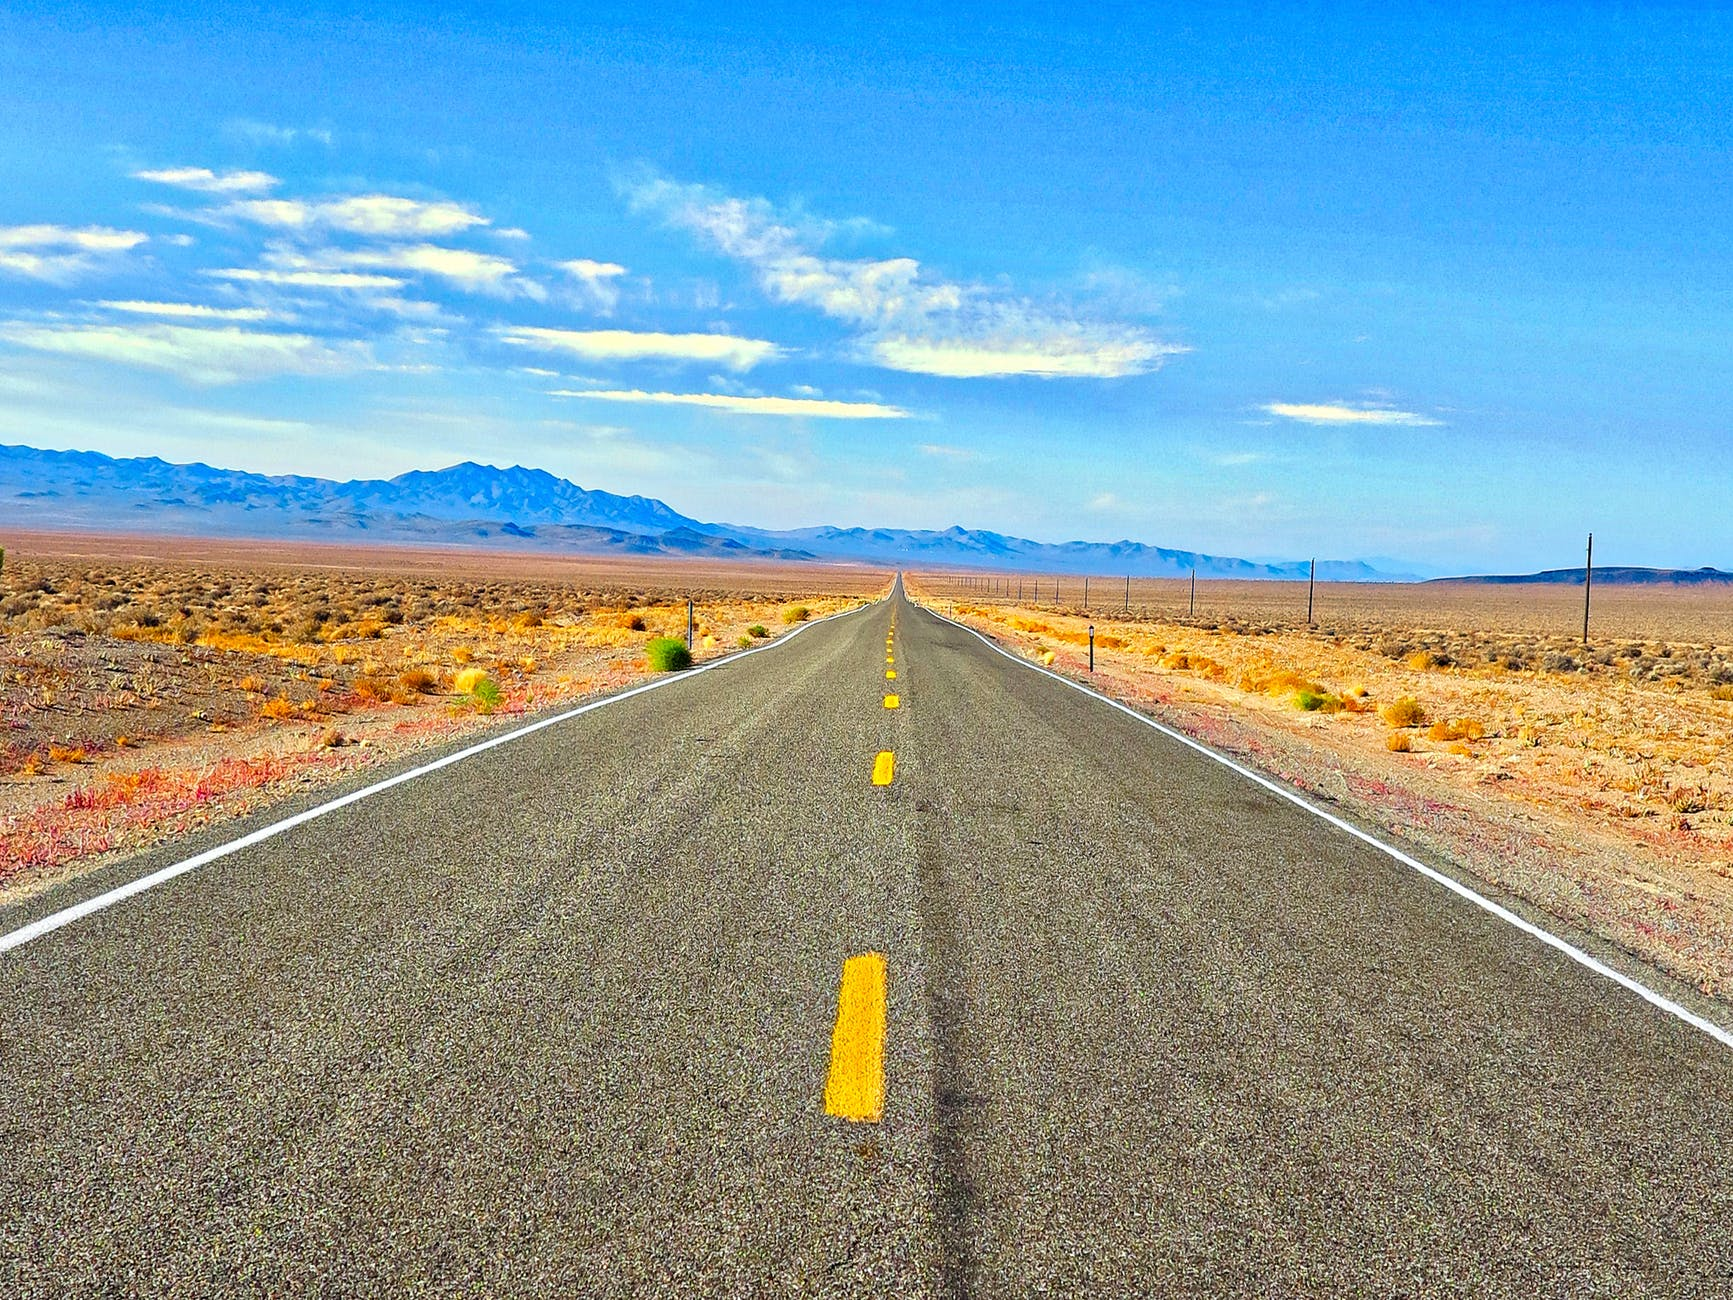 arizona asphalt beautiful blue sky